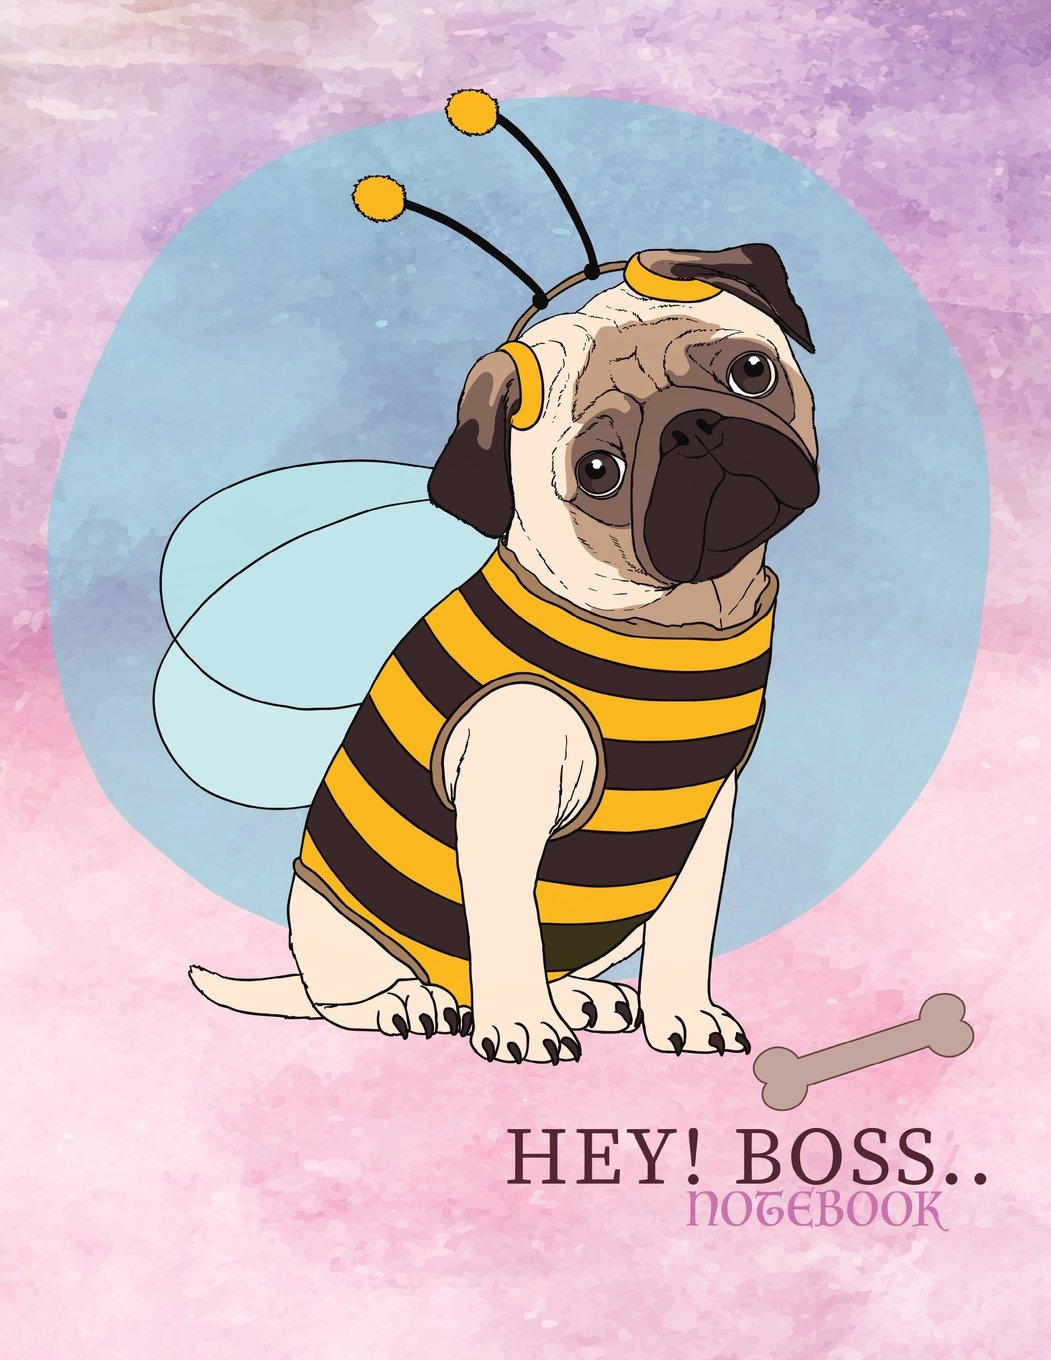 Notebook: Hey! Boss cover and Line pages, Extra large (8.5 x 11) inches, 110 pages, notebooks and journals (Hey! Boss notebook,with Line pages, Extra large (8.5 x 11) inches, 110 pages) (Volume 3) PDF